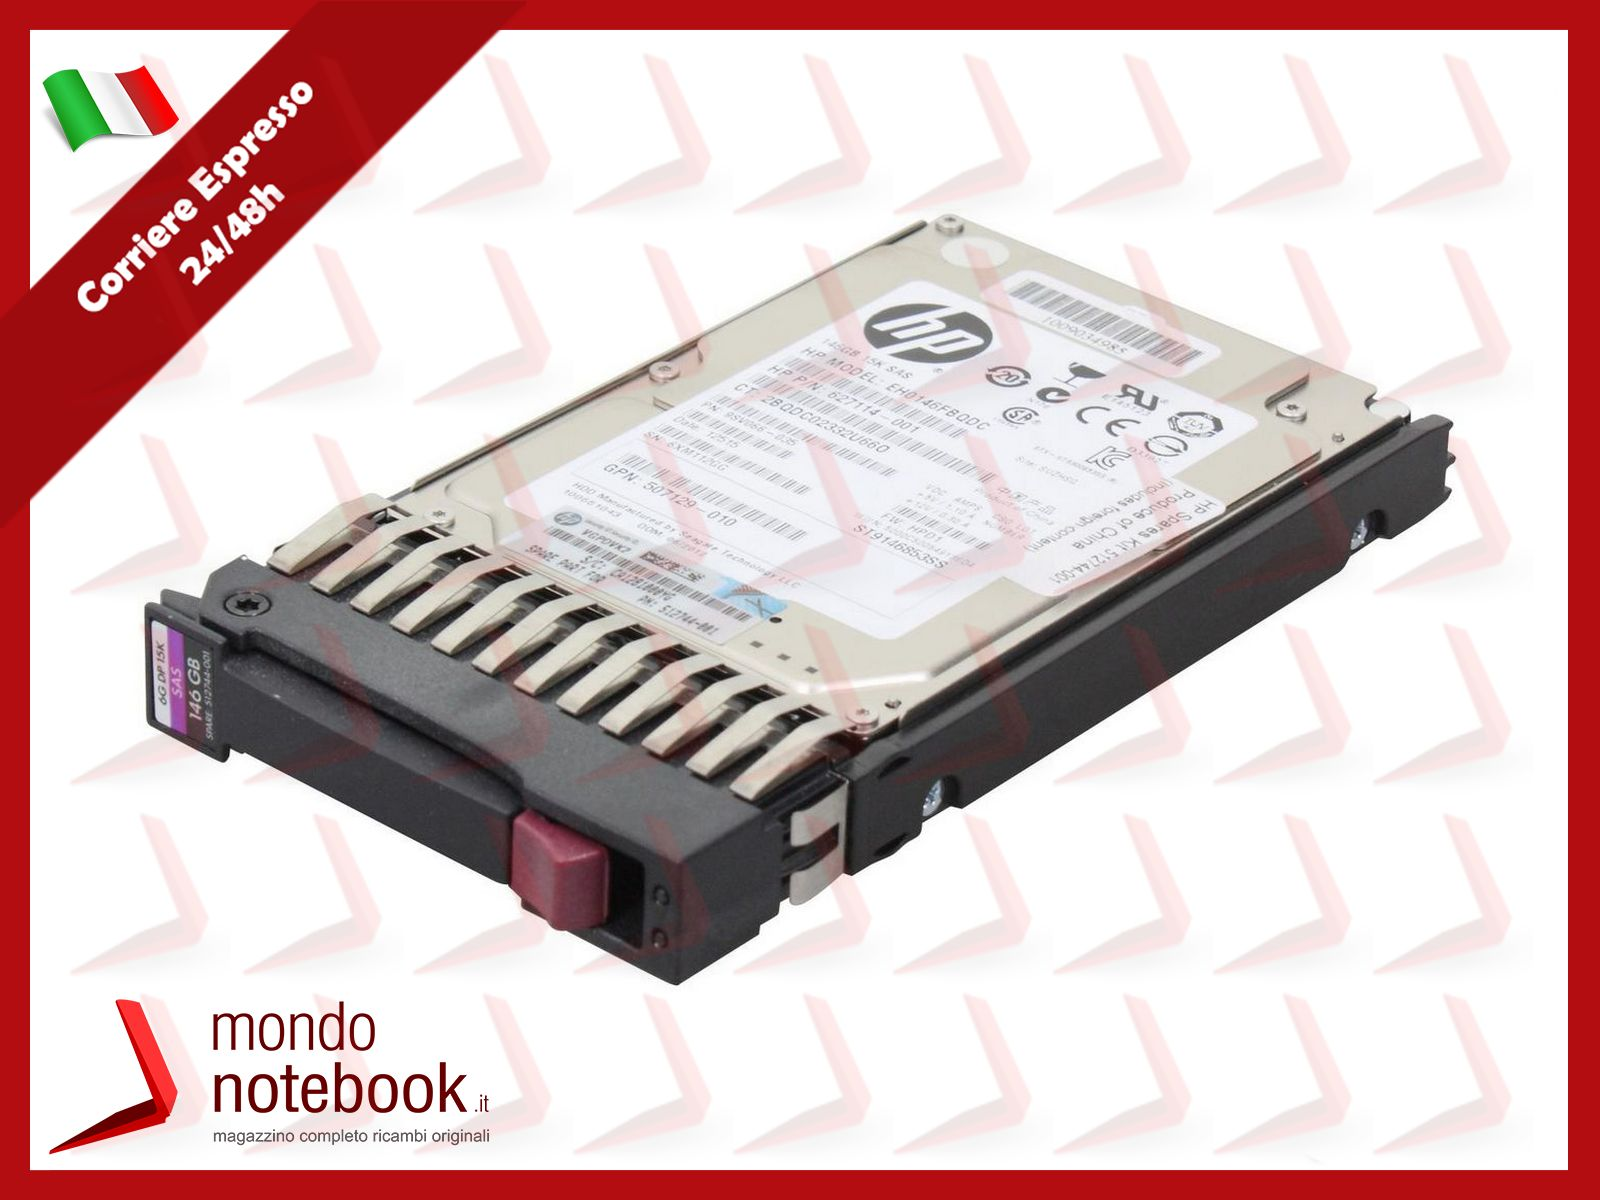 https://www.mondonotebook.it/12495/green-cell-batteria-per-toshiba-satellite-a660-a665-l650-l650d-l655-l670-l670d-pa3634u-1brs-111v-4400mah.jpg